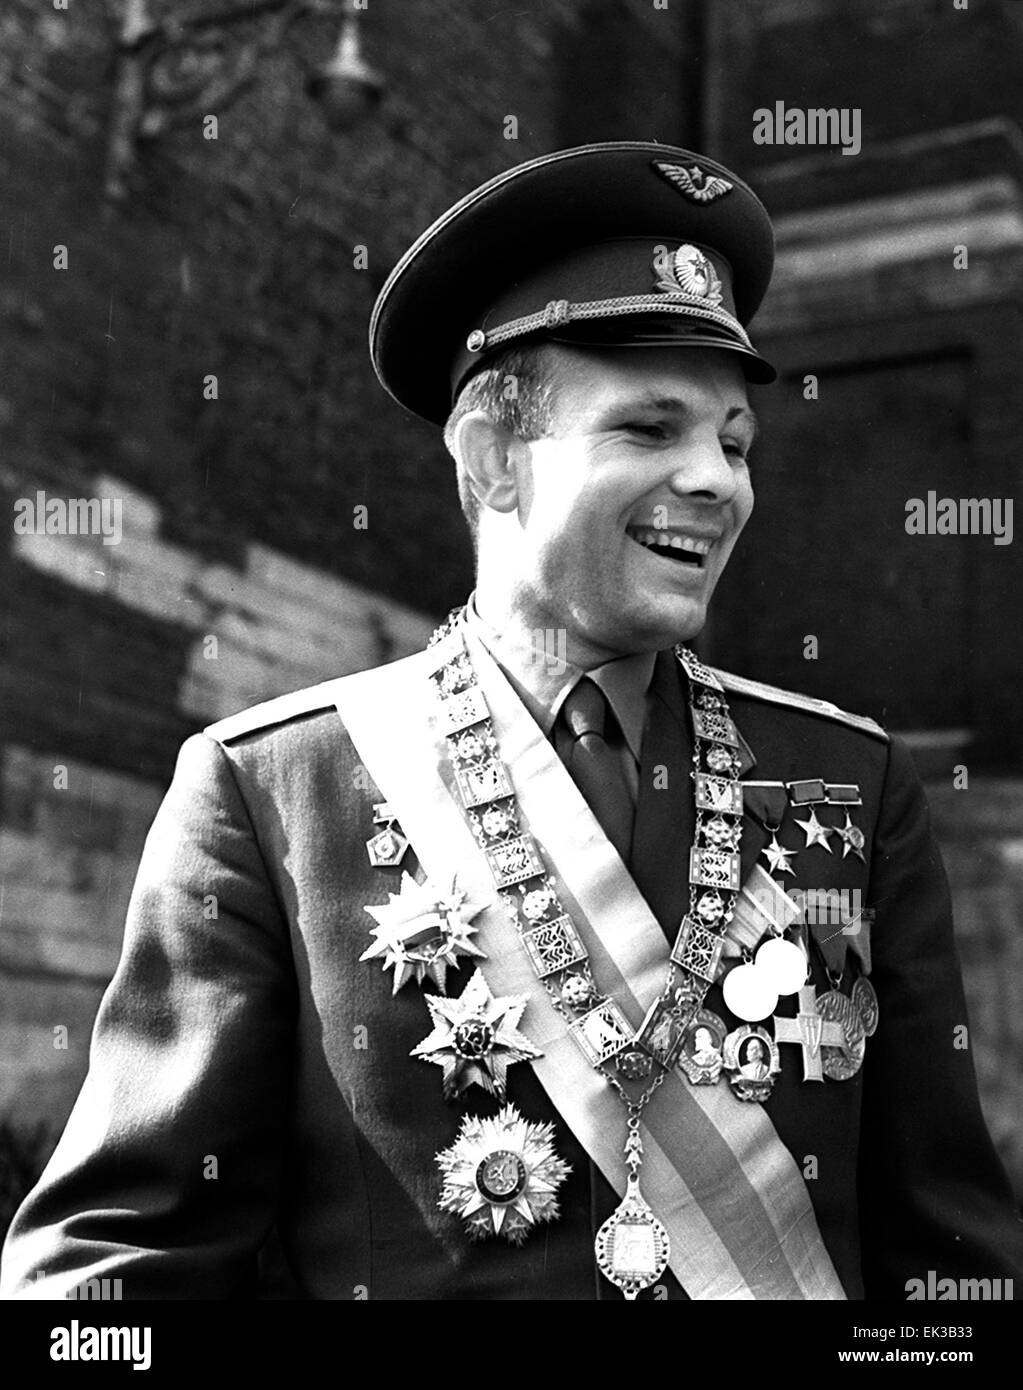 USSR. First man in space Yuri Gagarin poses with his ...